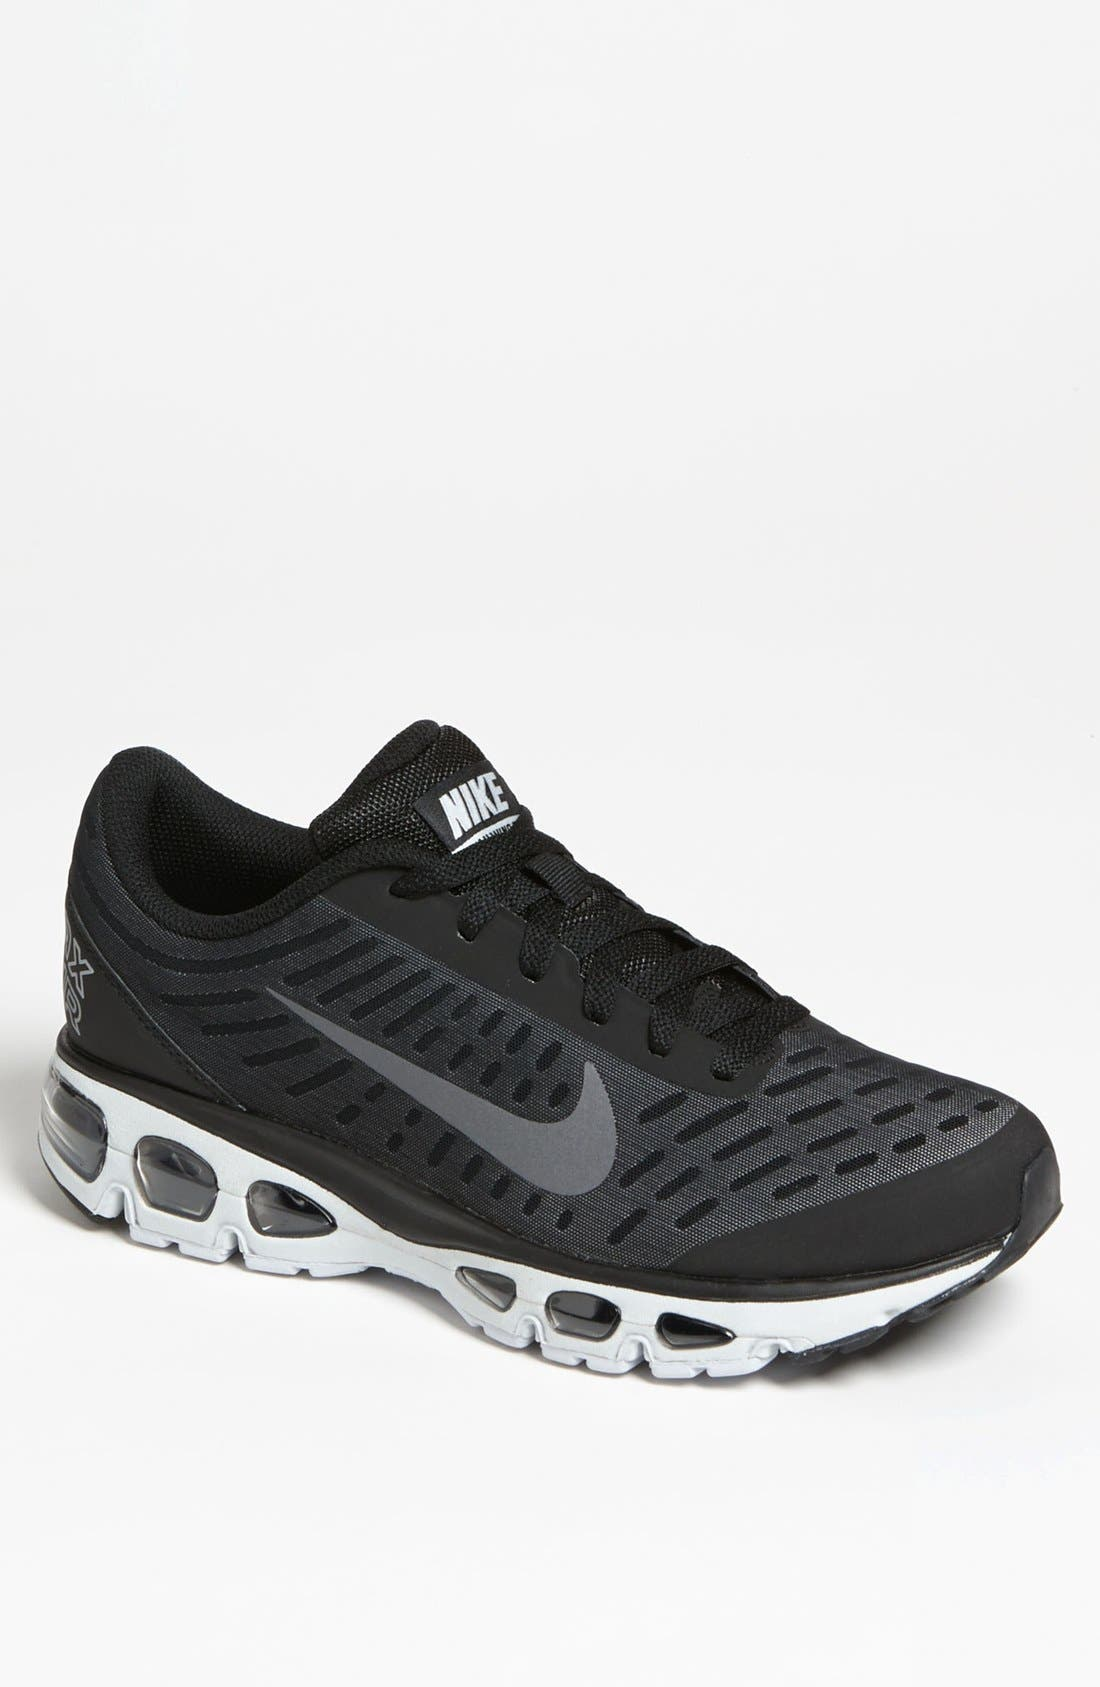 Alternate Image 1 Selected - Nike 'Air Max Tailwind+ 5' Running Shoe (Men)